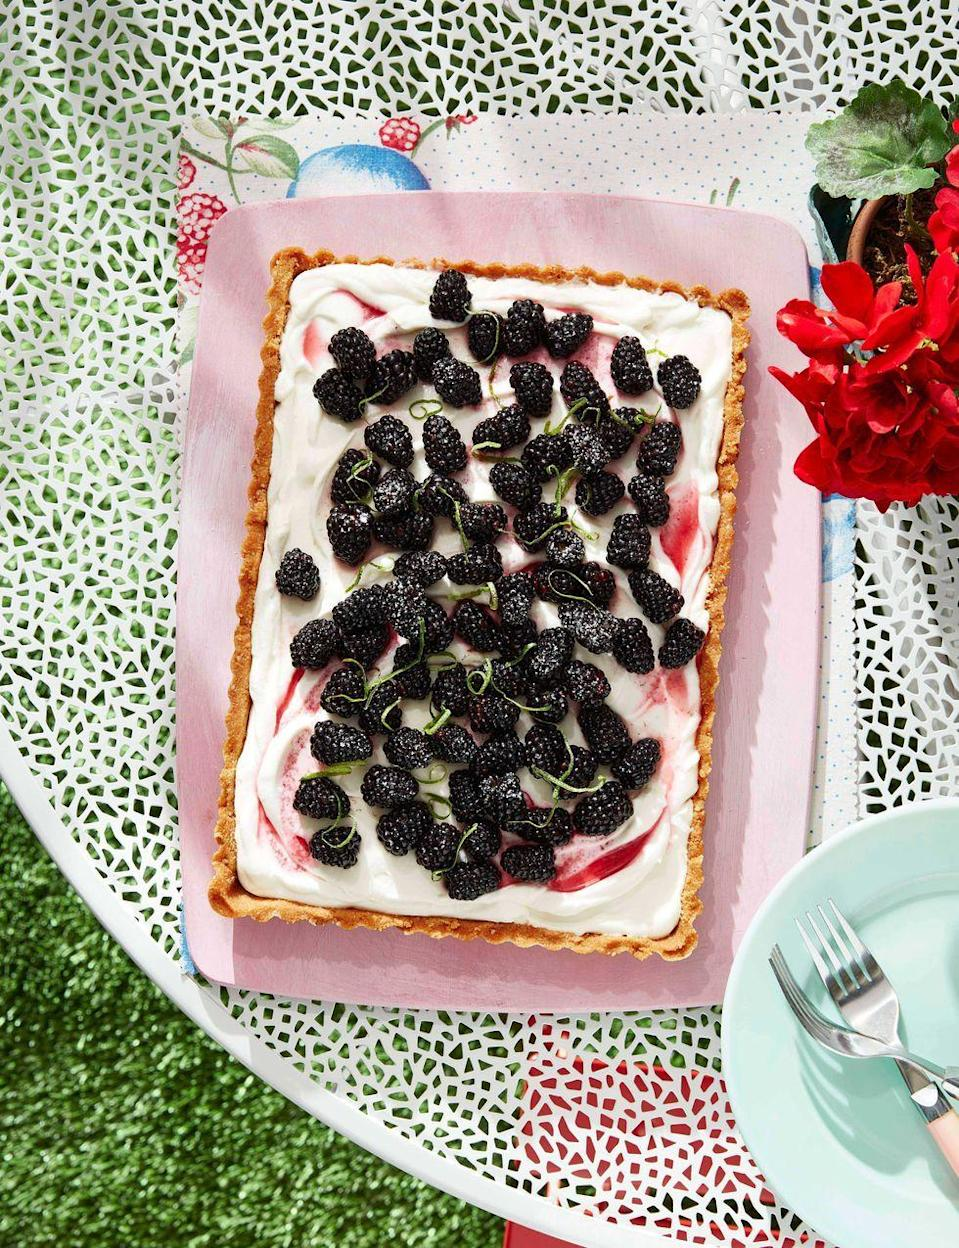 """<p>Fresh blackberries and coconut make for a delicious, not-too-sweet dessert perfect for springtime.</p><p><strong><a href=""""https://www.countryliving.com/food-drinks/a32352700/blackberry-coconut-tart/"""" rel=""""nofollow noopener"""" target=""""_blank"""" data-ylk=""""slk:Get the recipe"""" class=""""link rapid-noclick-resp"""">Get the recipe</a>.</strong></p>"""